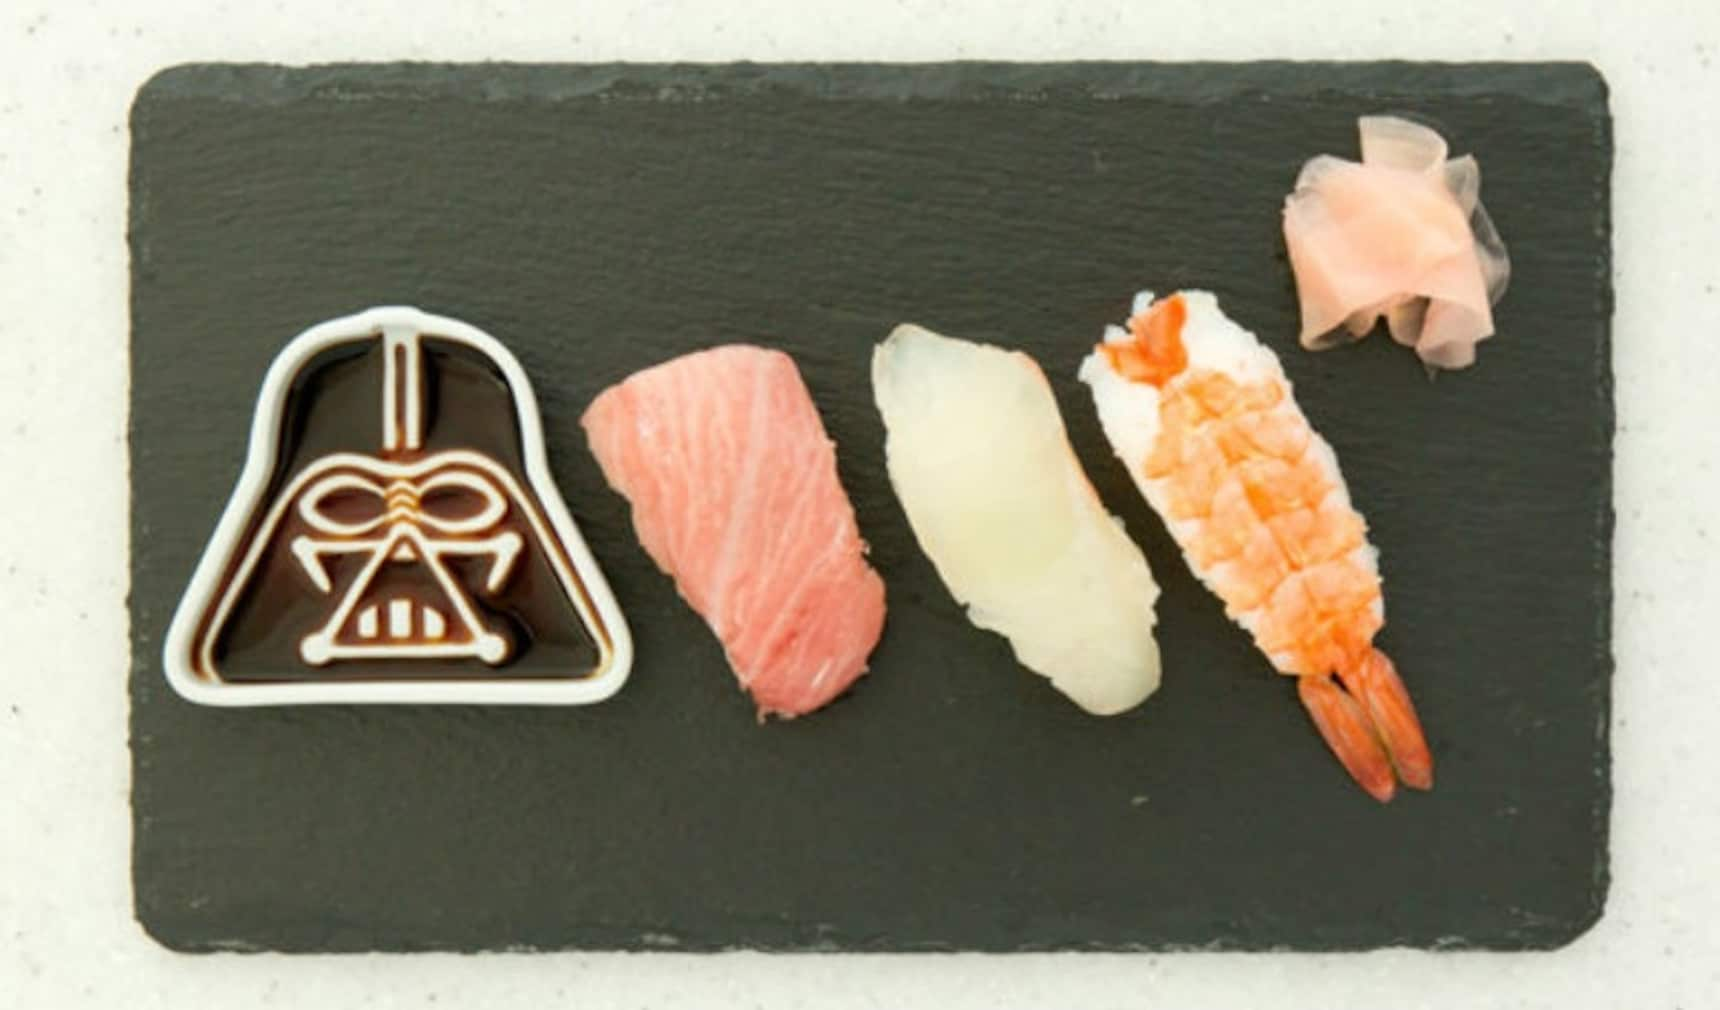 Dip Your Sushi in 'Star Wars' Soy Sauce Dishes